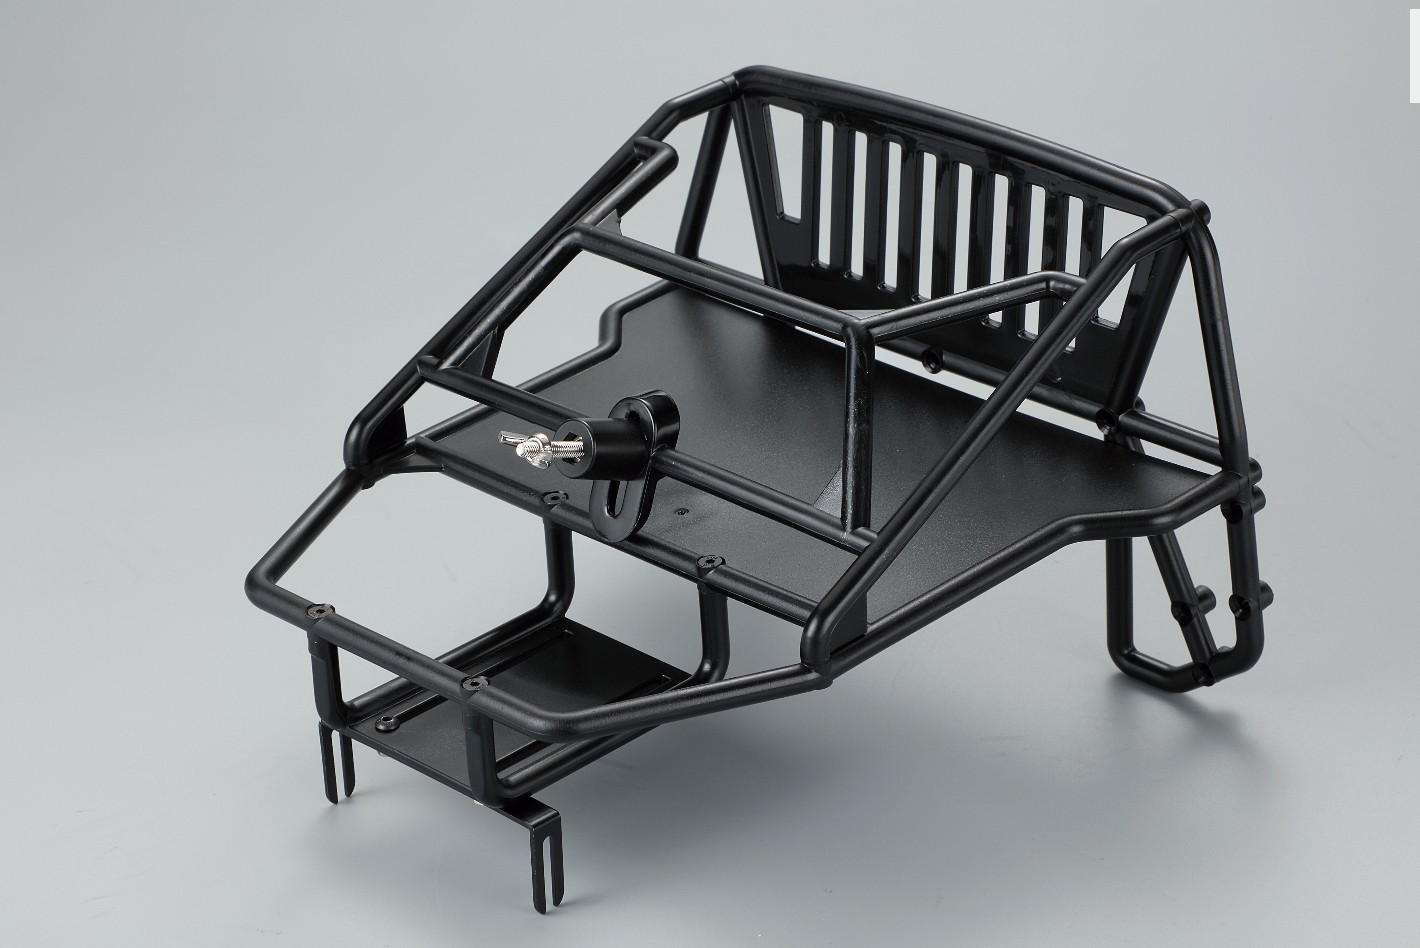 RC Cherokee Body Cab & Back-Half Cage for 1/10 RC Crawler Traxxas TRX4 Axial SCX10 90046 Cage